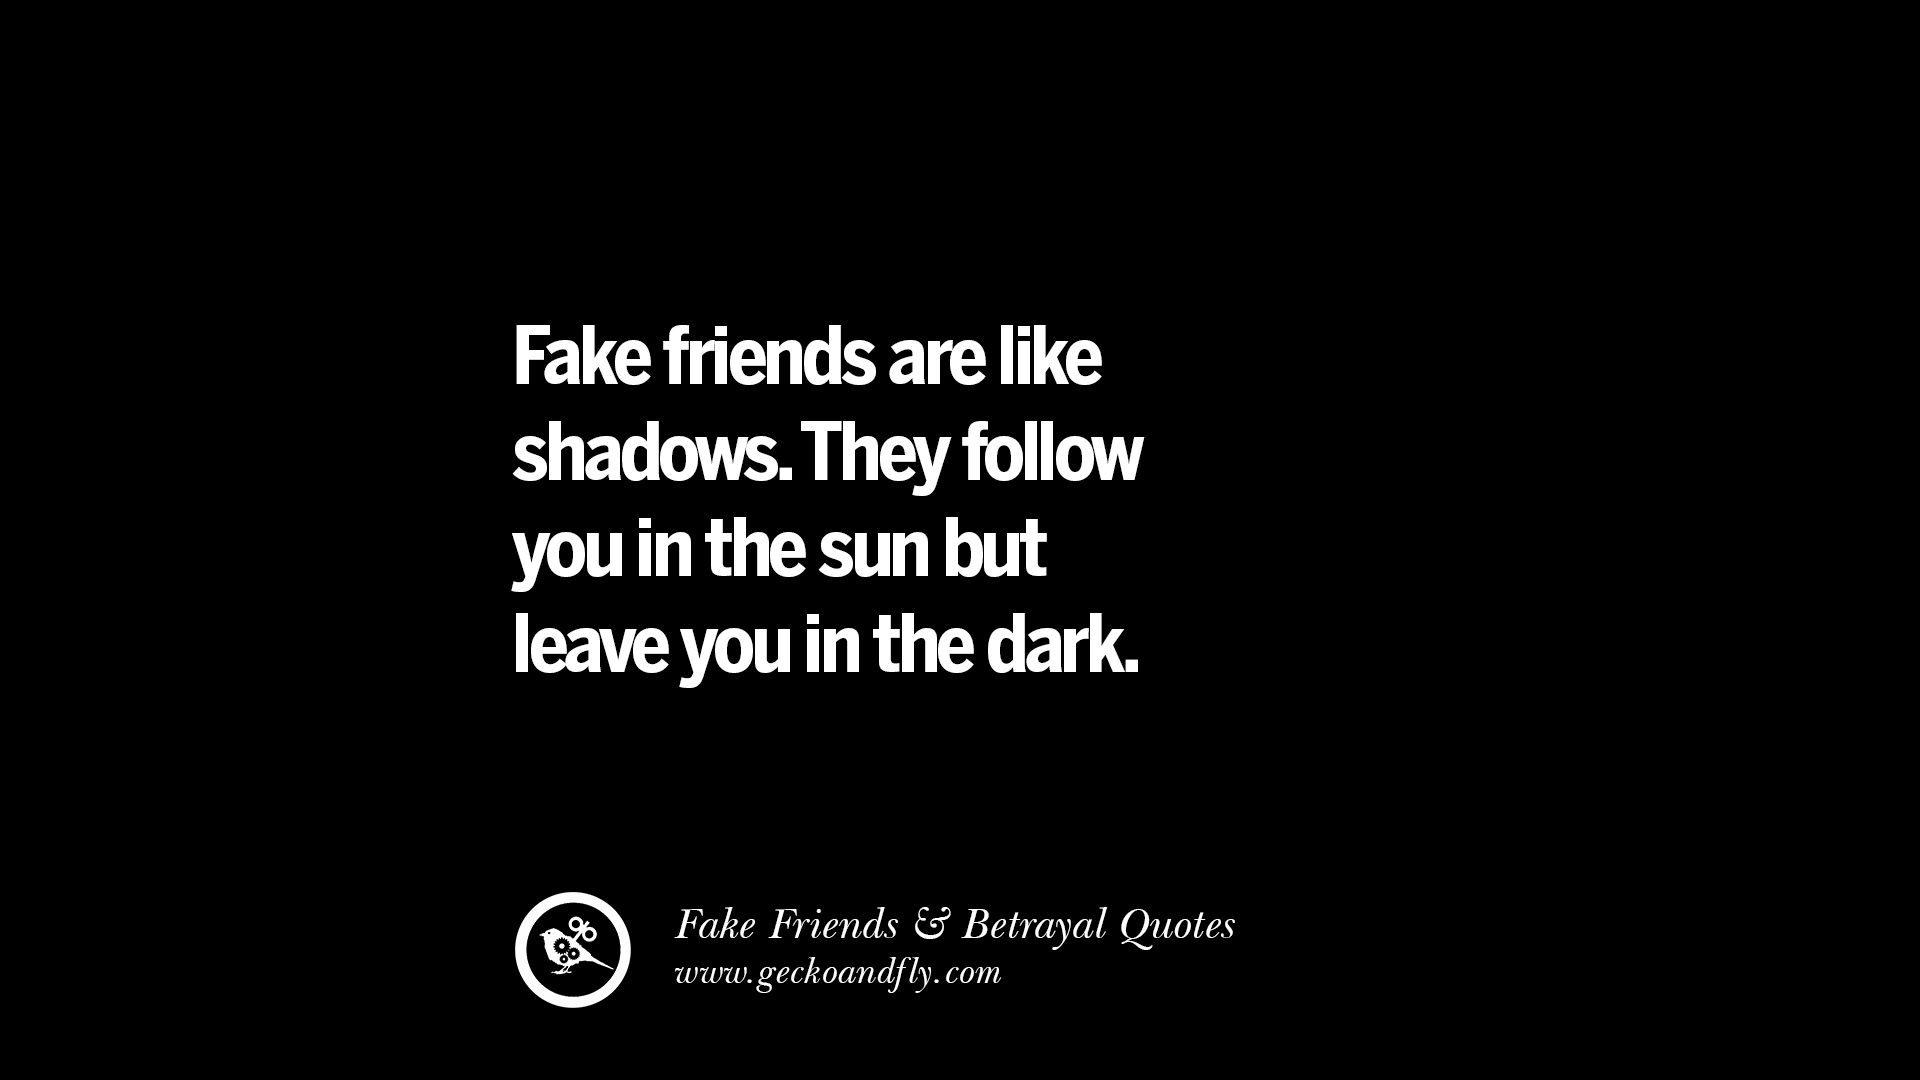 Friends Quotes About Shadows